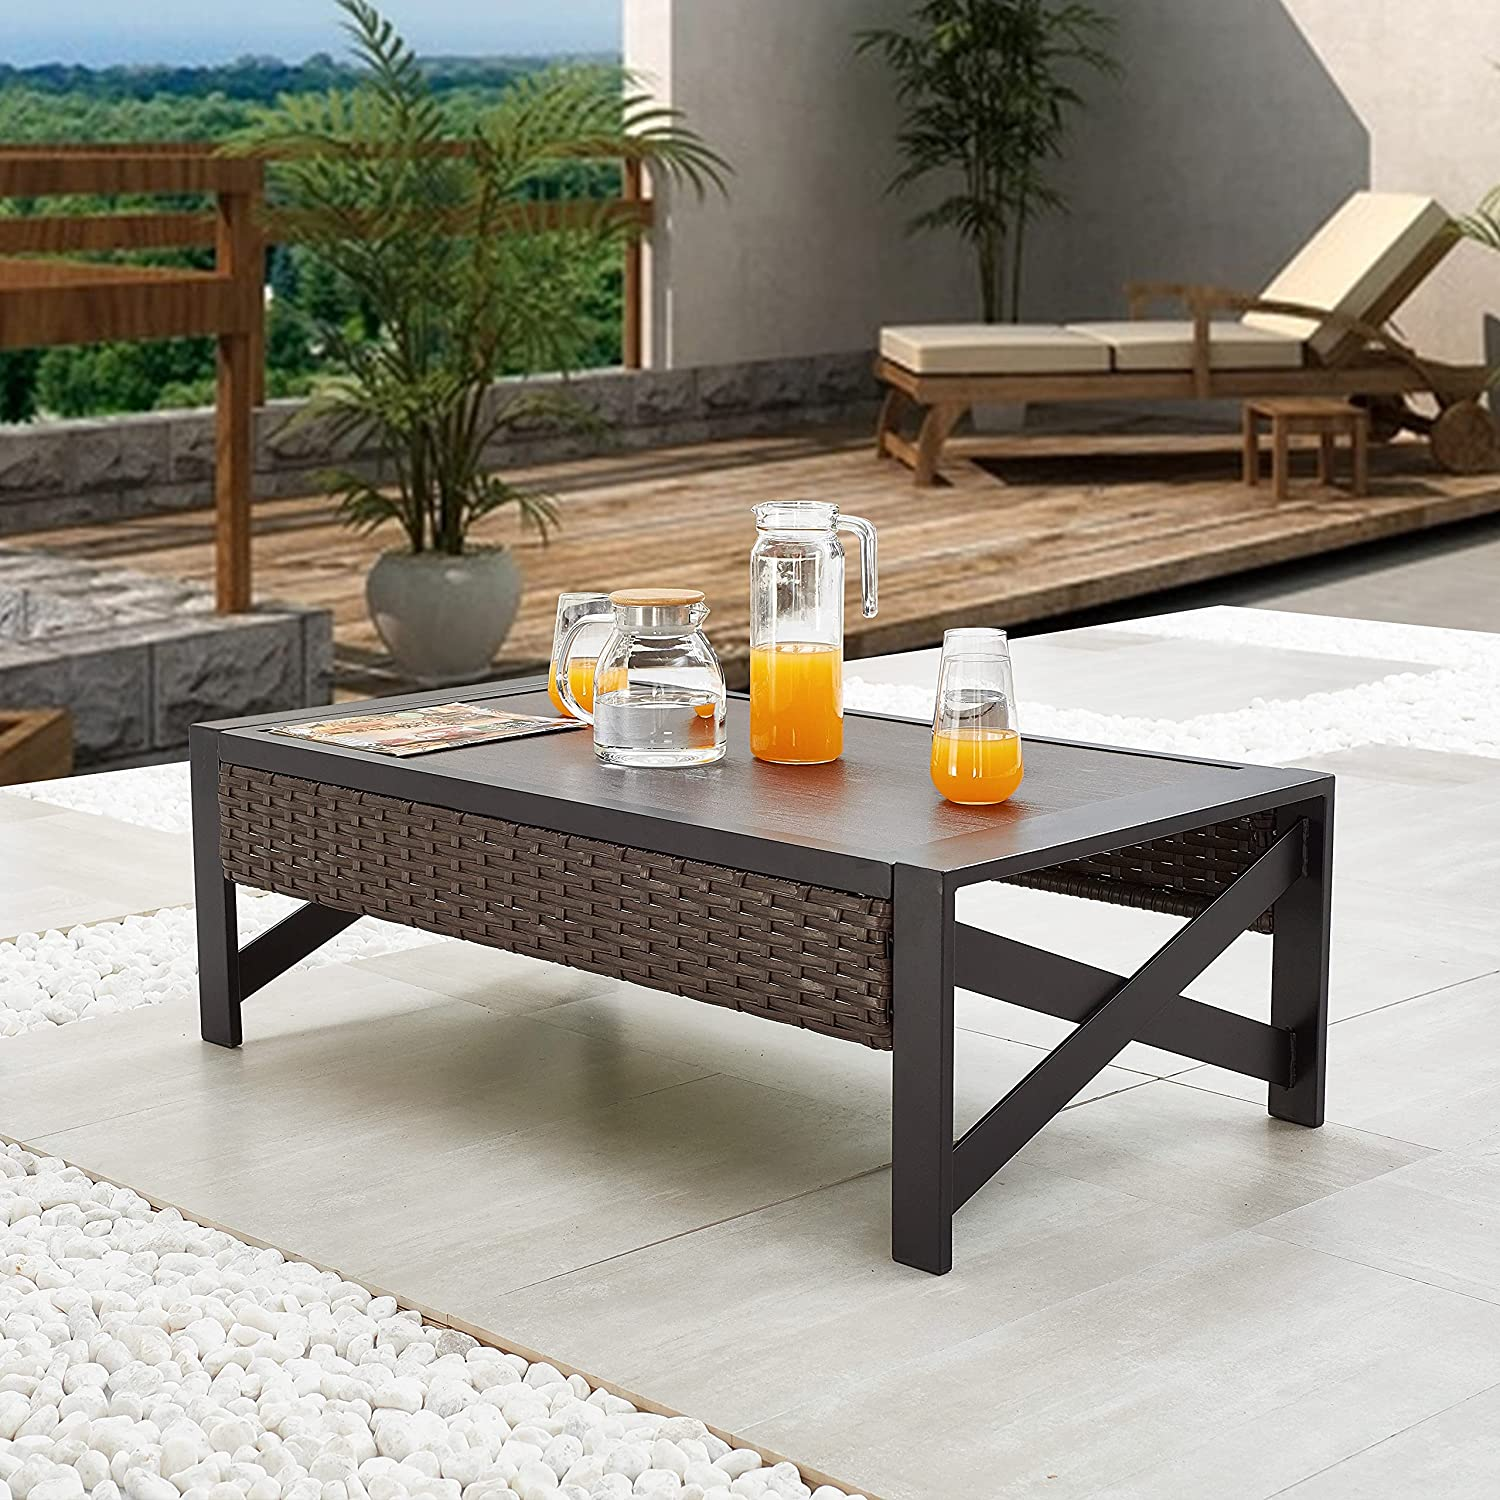 LOKATSE HOME Outdoor Metal Coffee End Table Patio Bistro Rectangle Side Wicker Rattan Furniture with X Shaped Steel Legs, Brown&Black